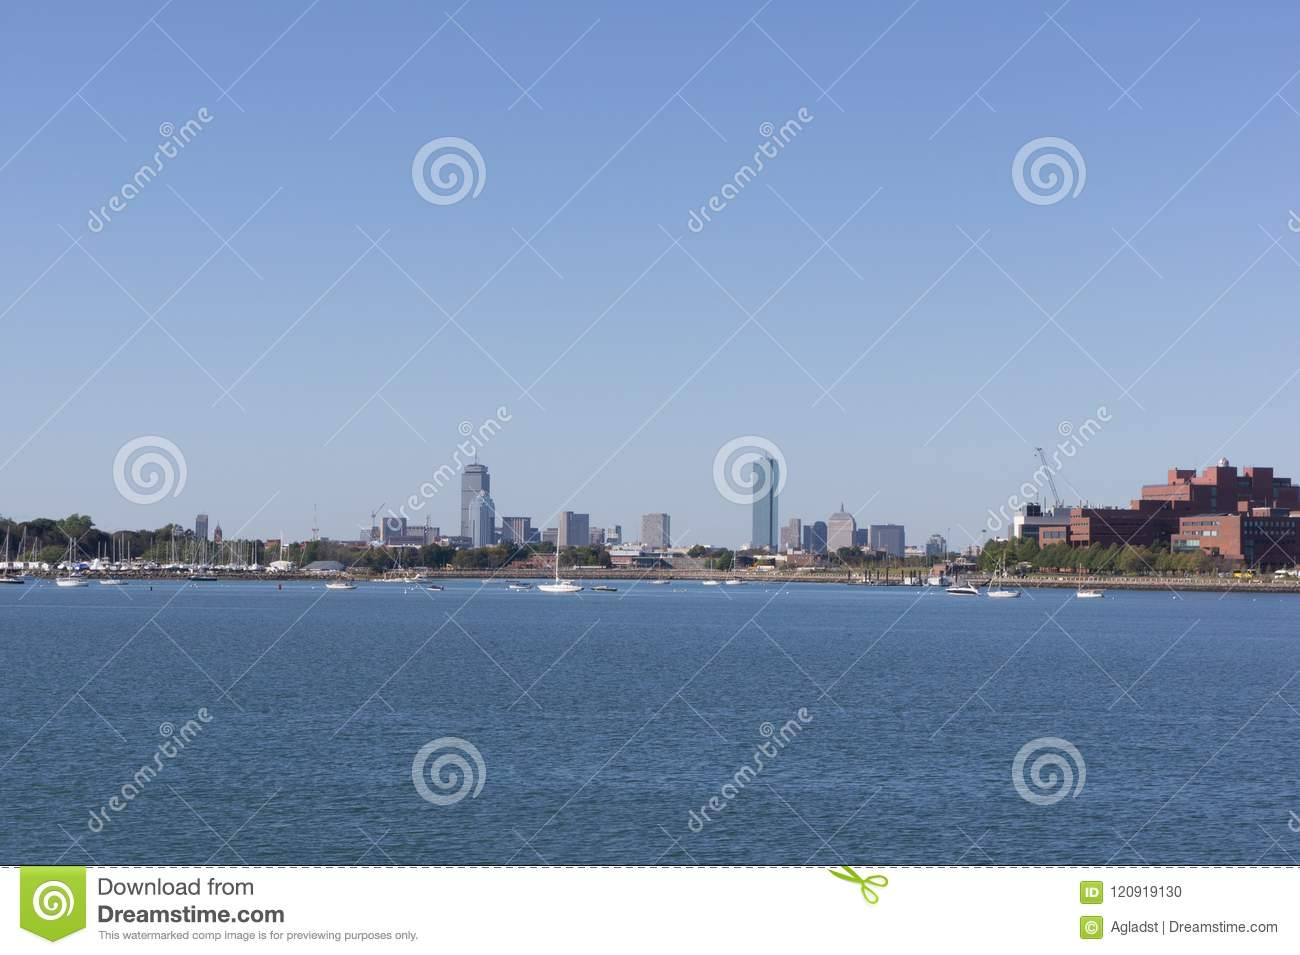 Boston Skyline as seen from Quincy